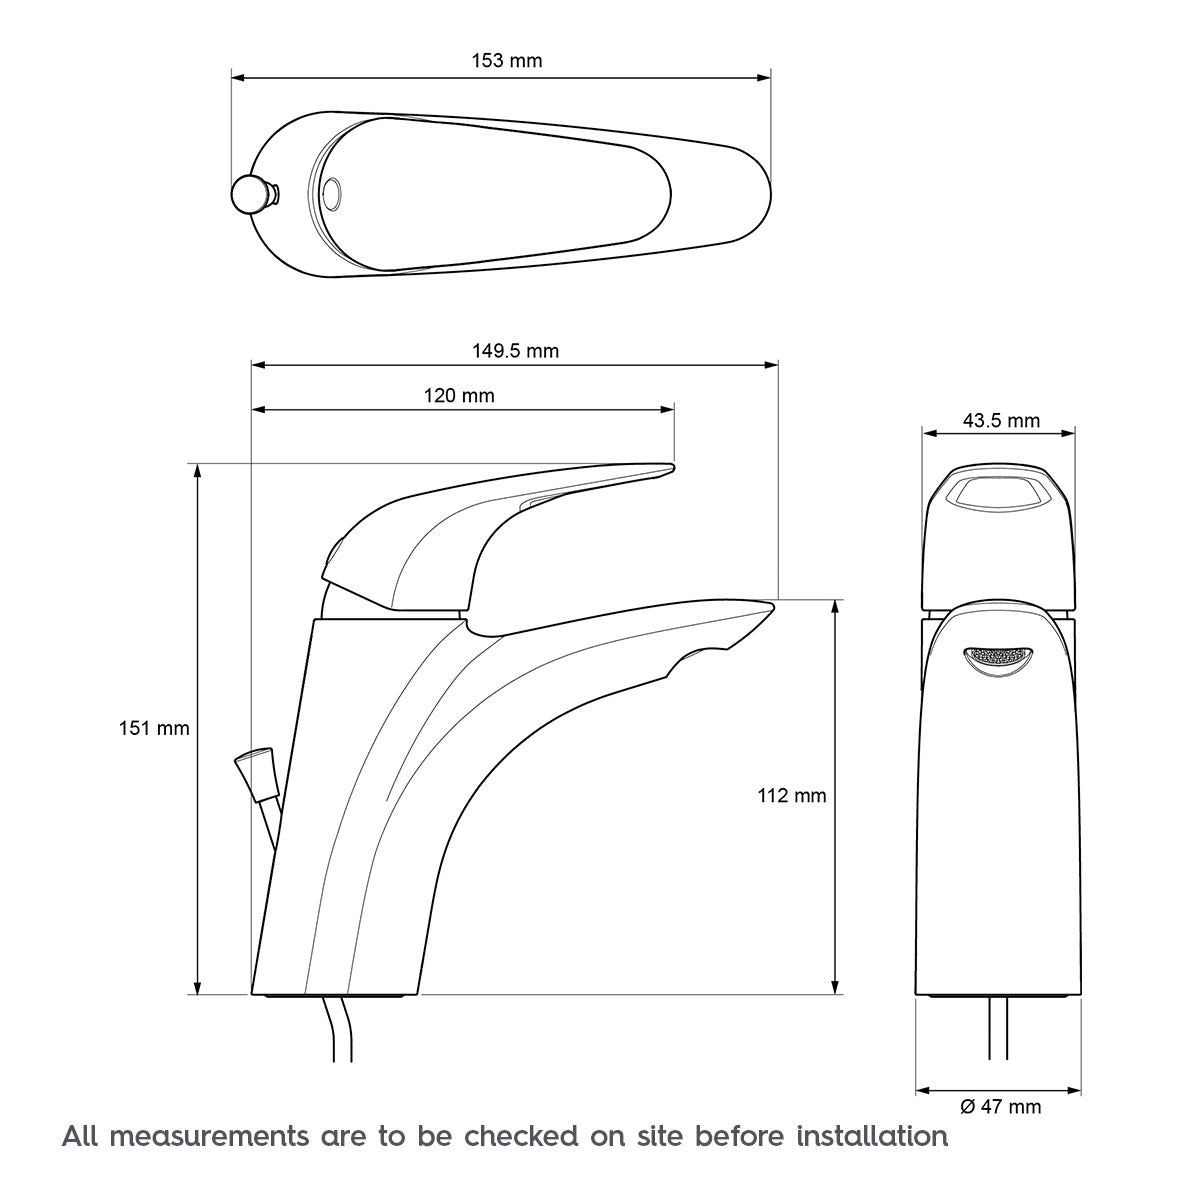 Technical drawing for Mira Comfort basin taps